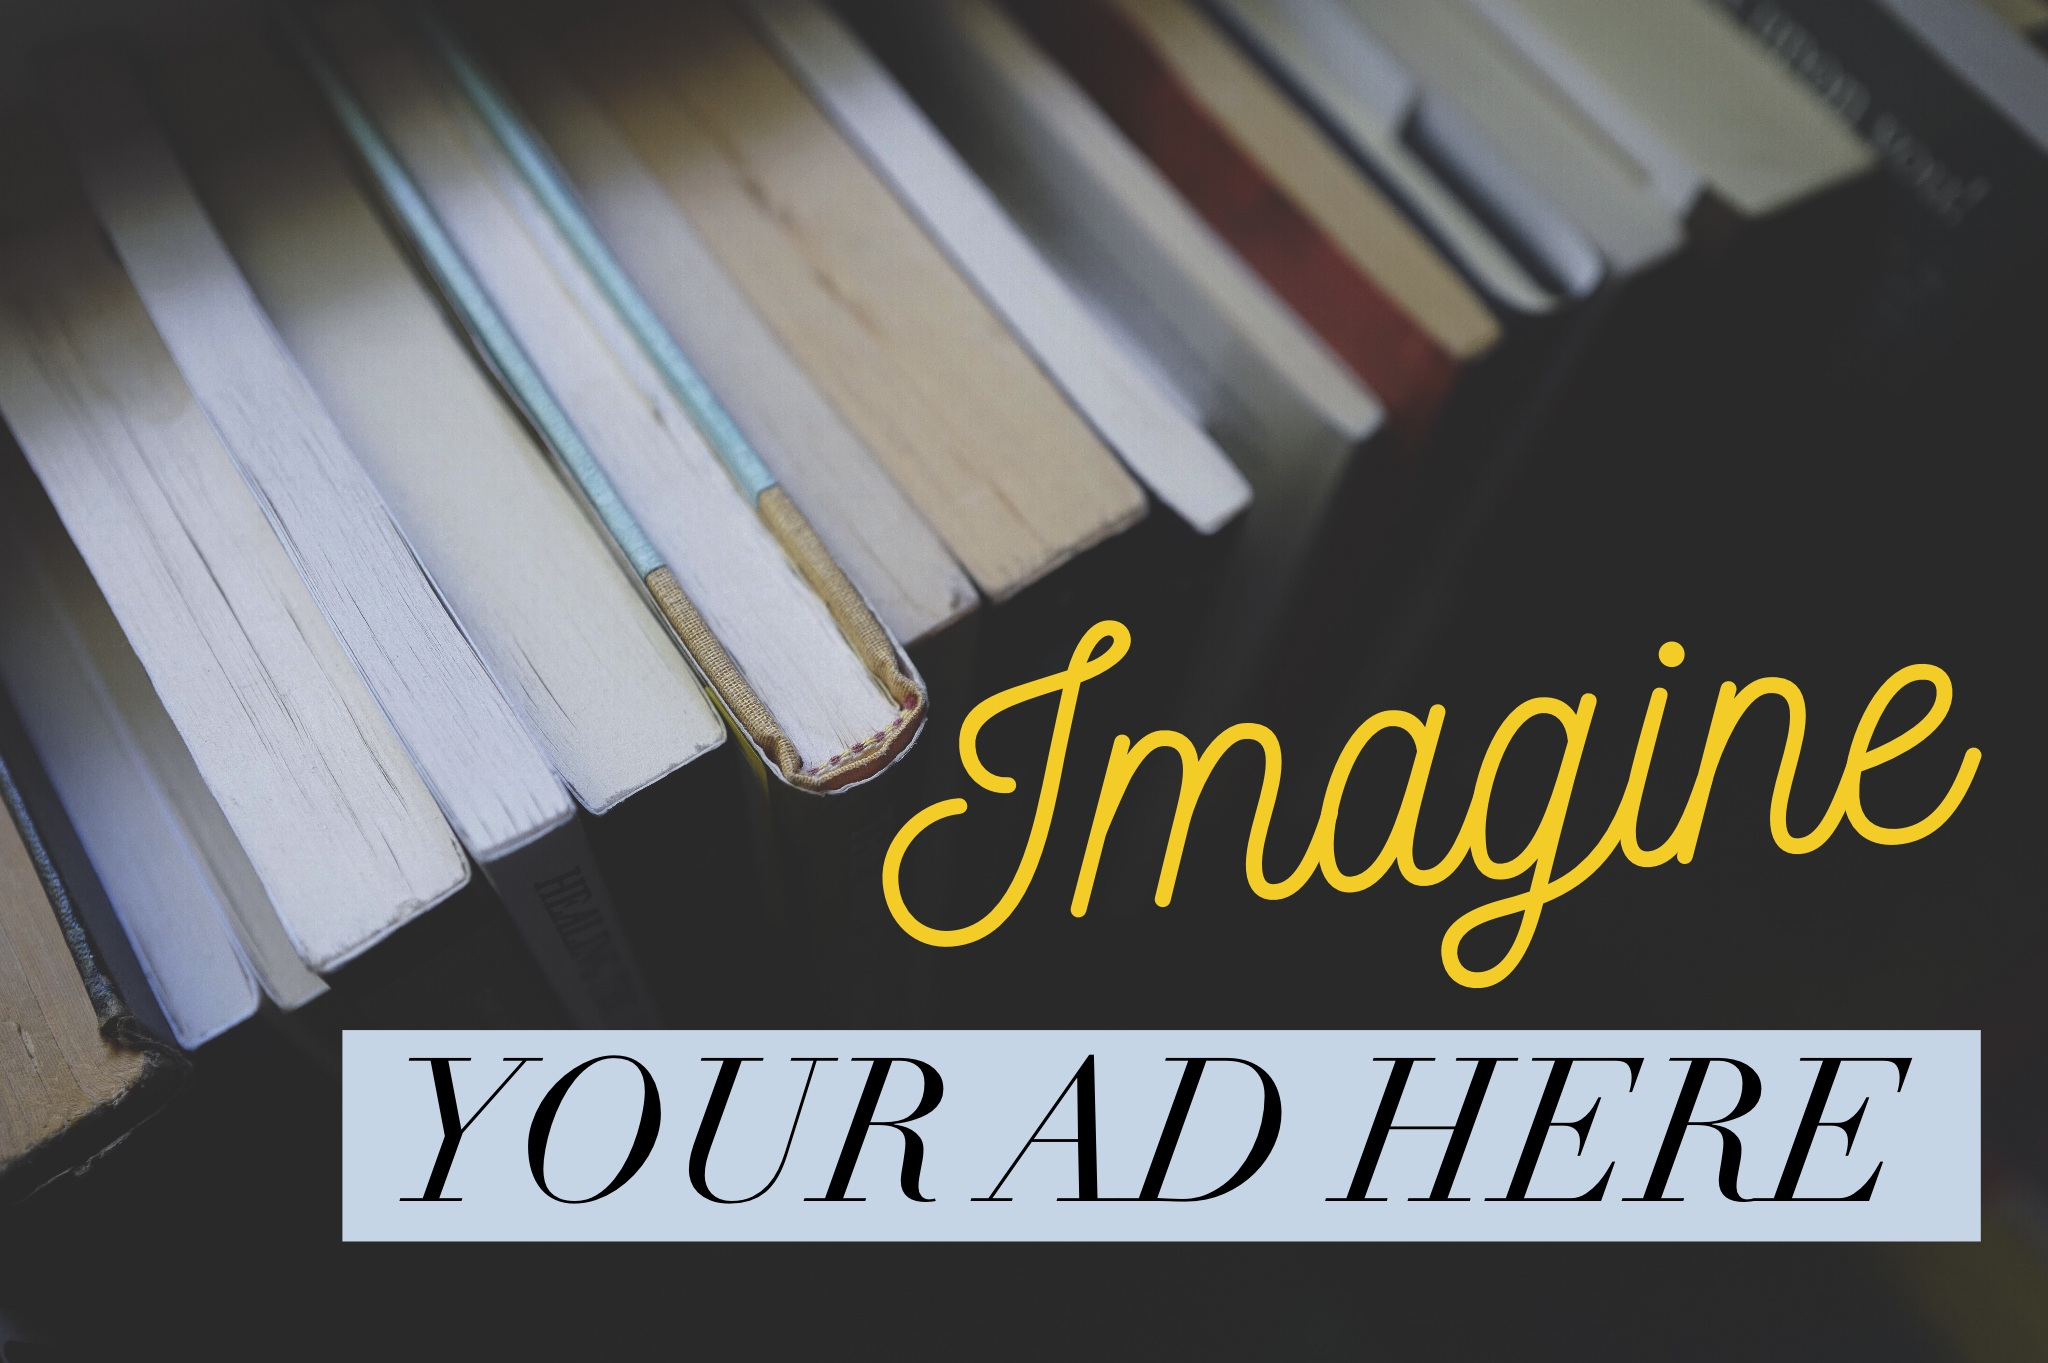 "[image description: A photo of the top of a row of books with the graphic text ""Imagine your ad here.""]"